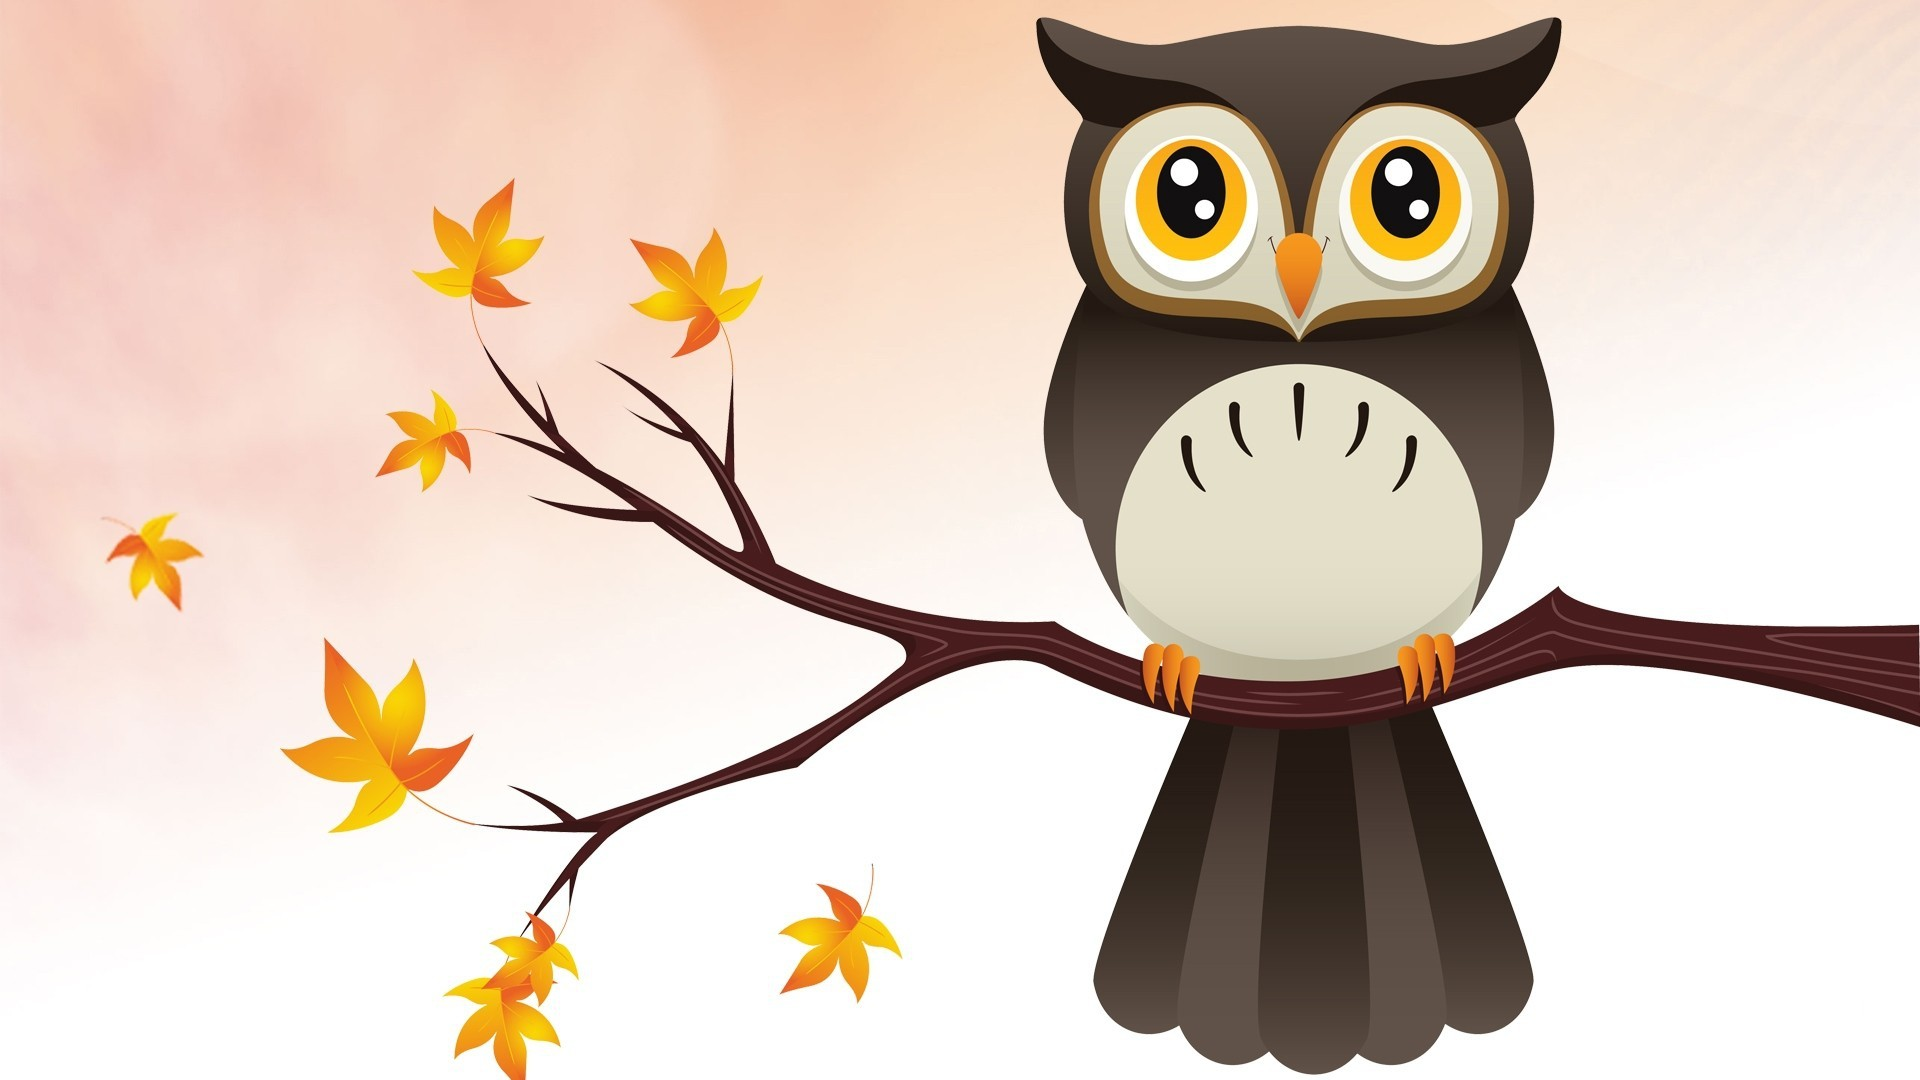 Res: 1920x1080, Cute Owl Background Free Download.